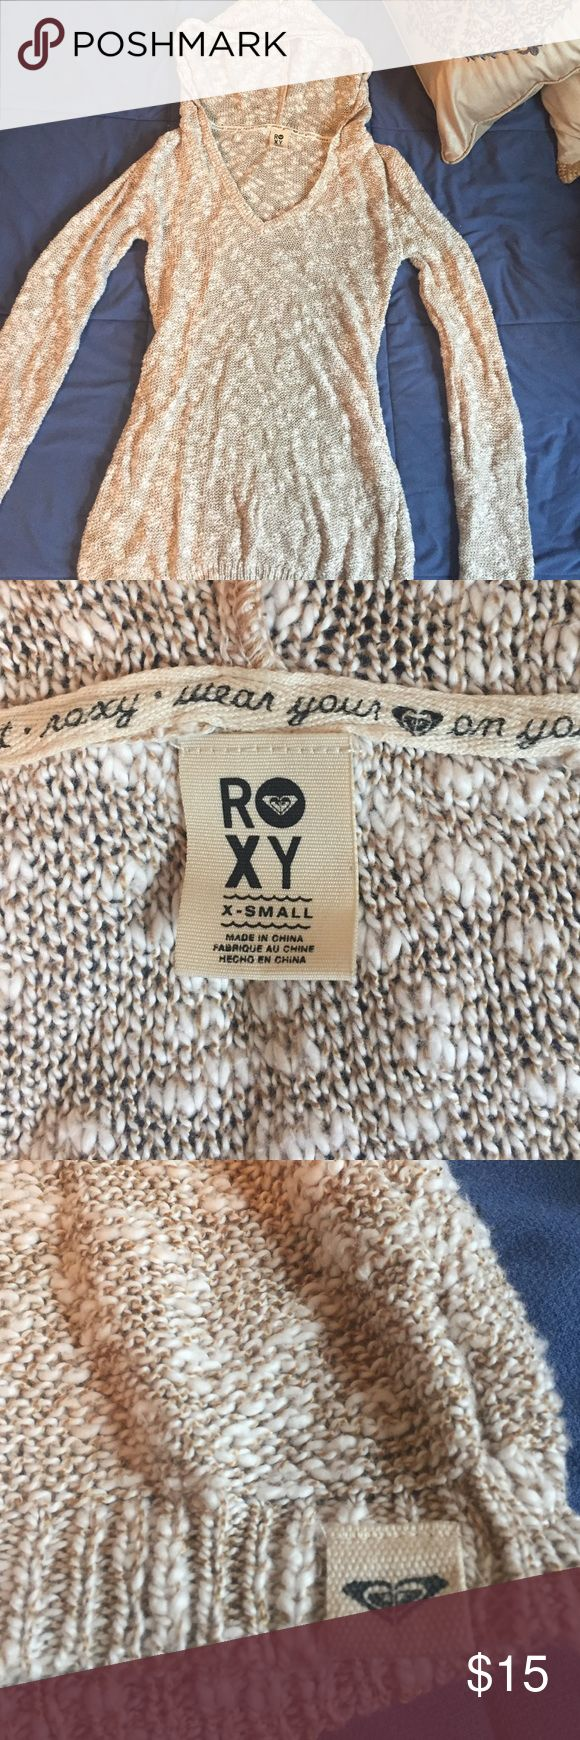 Roxy xsmall sweater hoodie Good condition. It says xsmall, would fit a petite woman or girl who wears size 12-14. Hood is not detachable Roxy Sweaters V-Necks